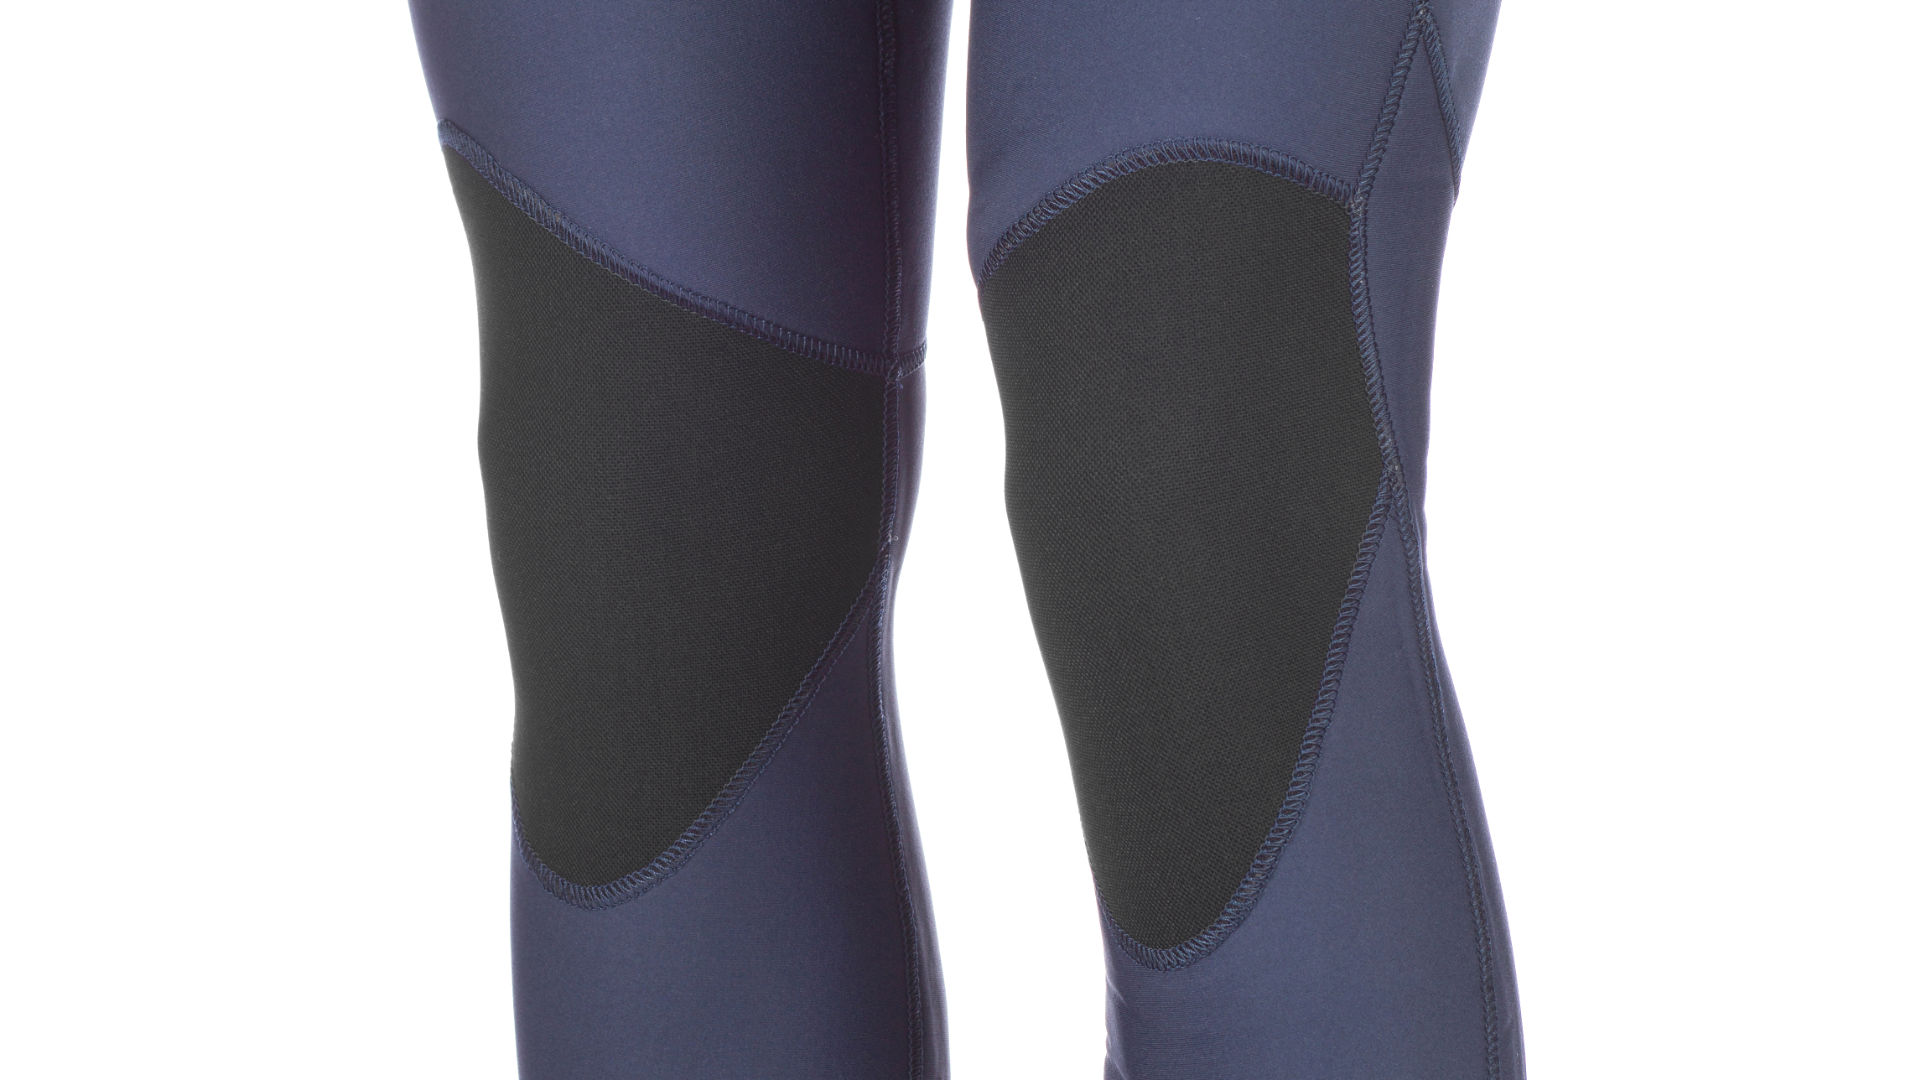 The reinforced knees of a full wetsuit